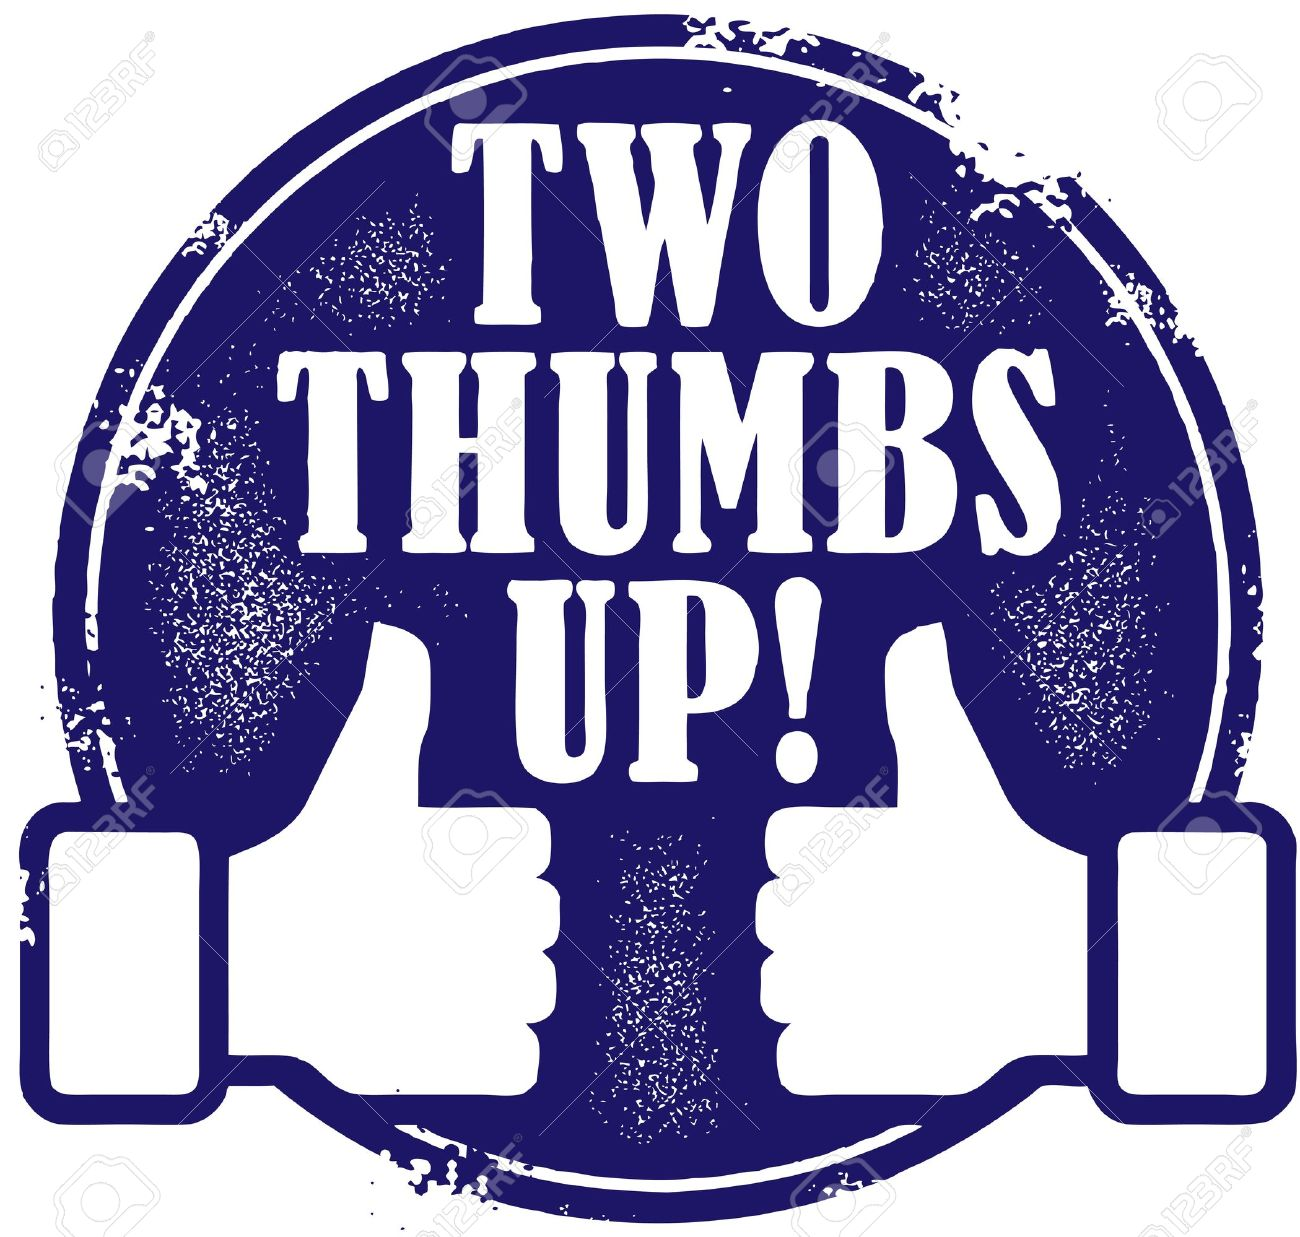 Double thumbs up clipart jpg royalty free download Double thumbs up clipart - ClipartFest jpg royalty free download